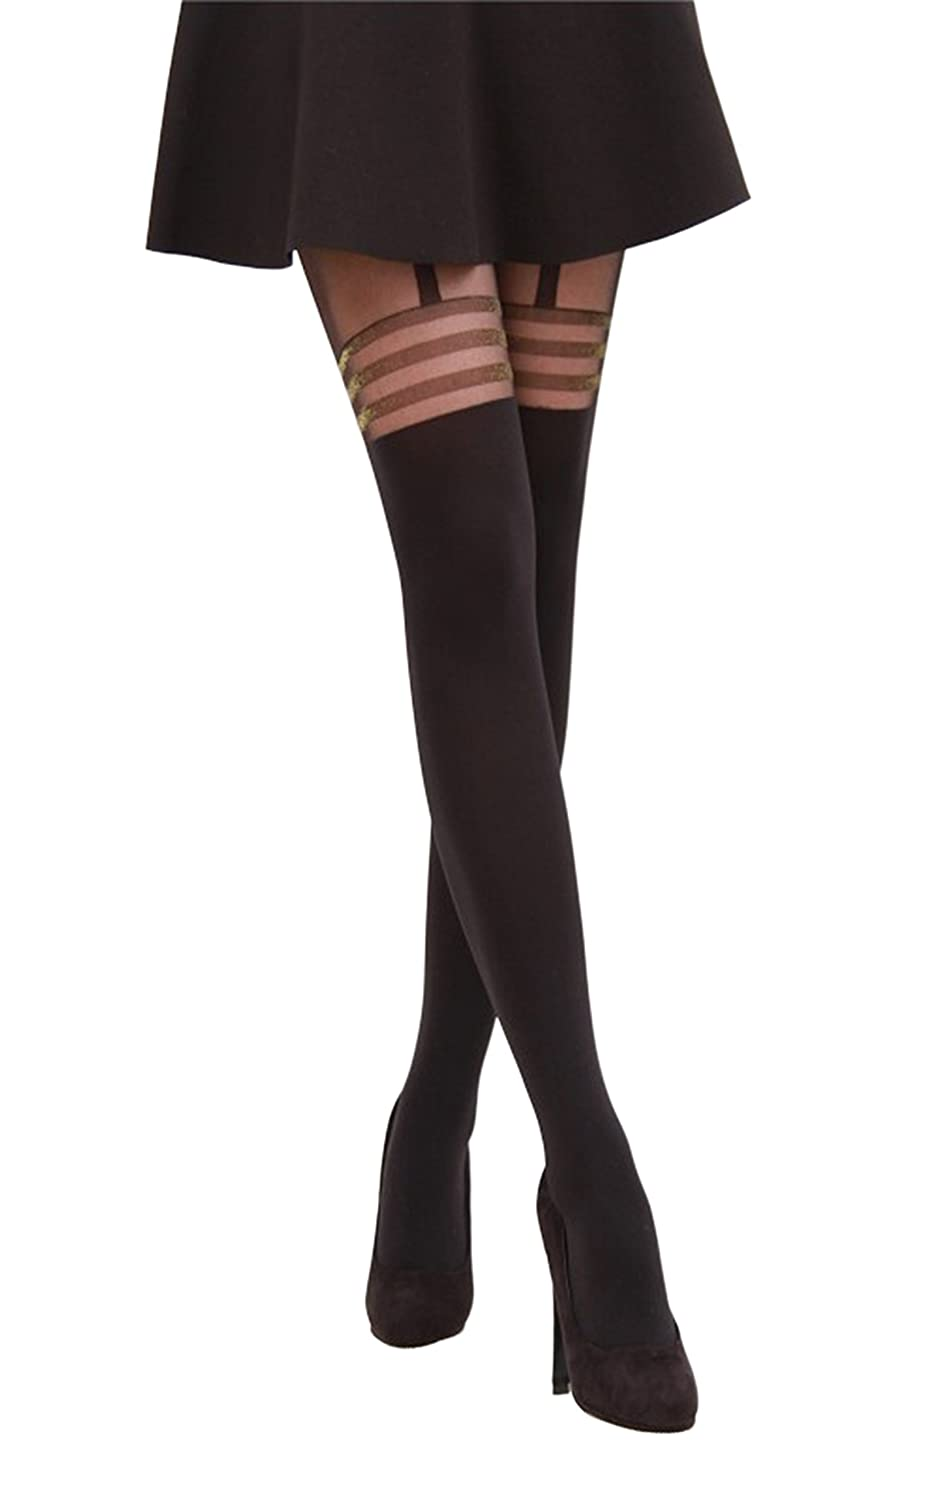 ace206e0dbbed Intimate Portal Women's Fake-it Thigh High Opaque Tights Strap Black Gold  Glitters at Amazon Women's Clothing store: